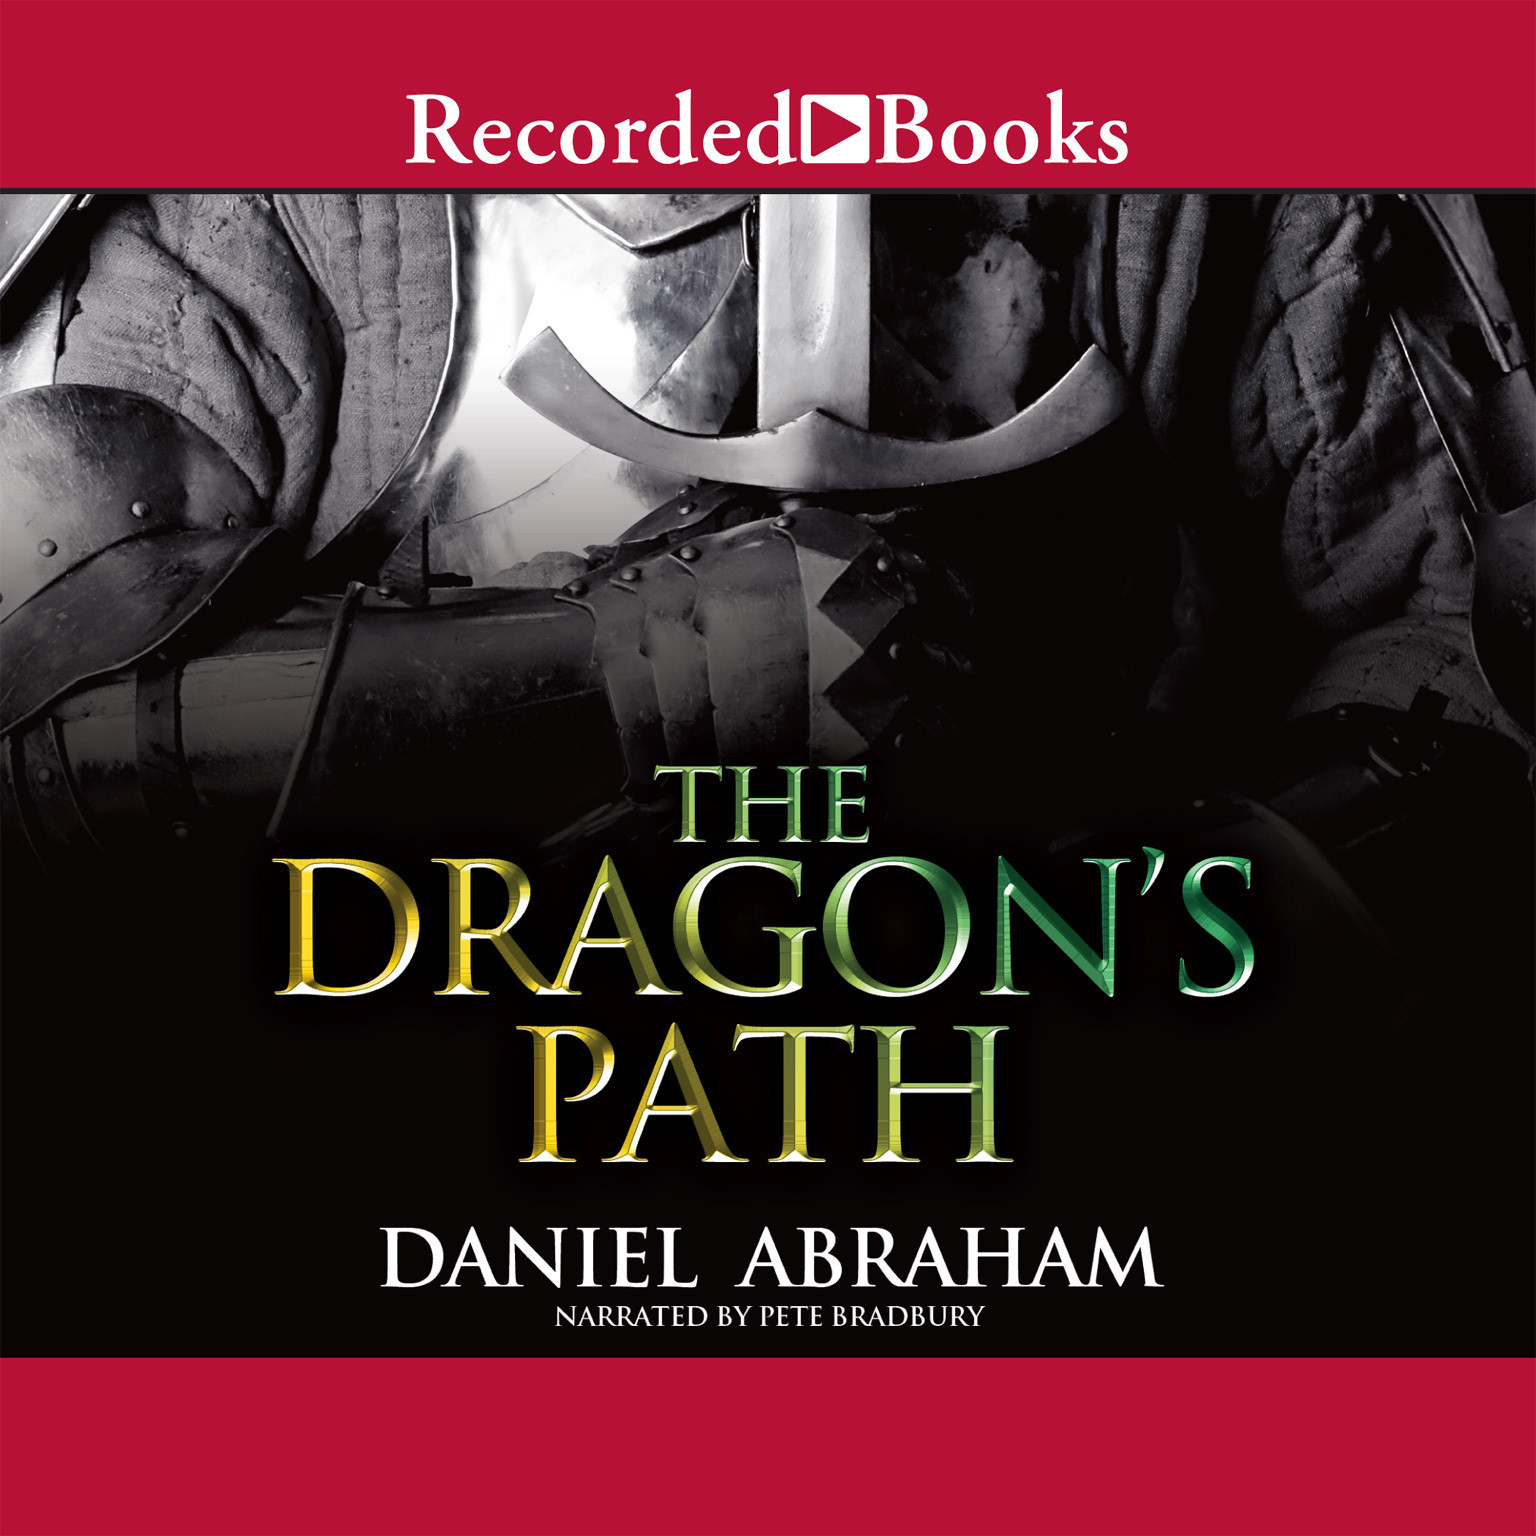 Printable The Dragon's Path Audiobook Cover Art